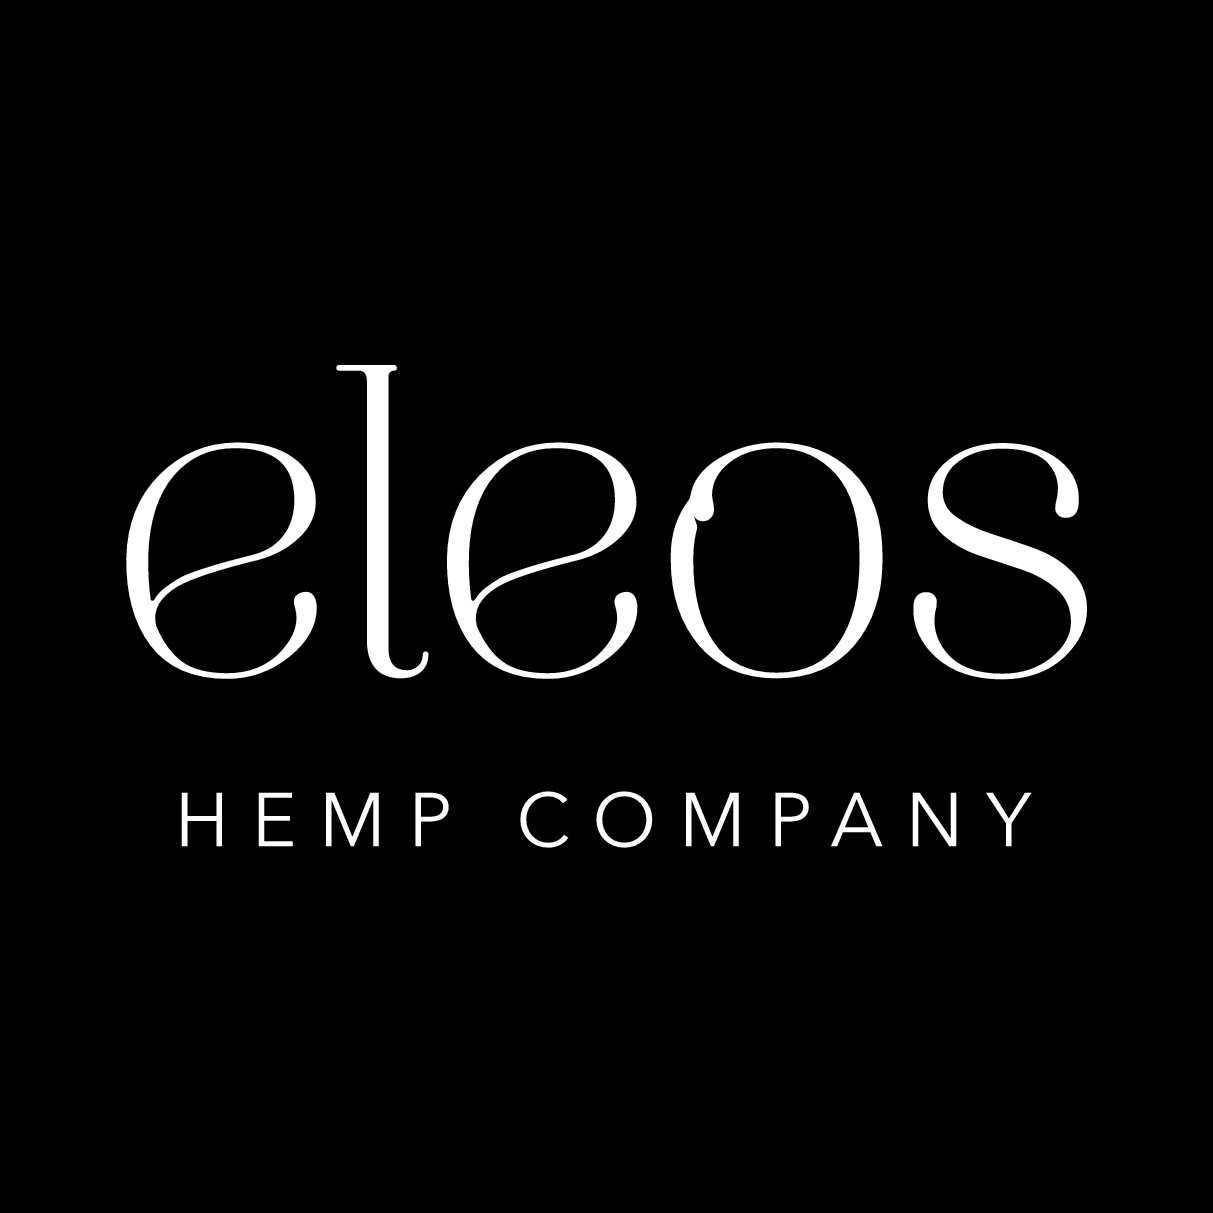 Logo design for luxury hemp company